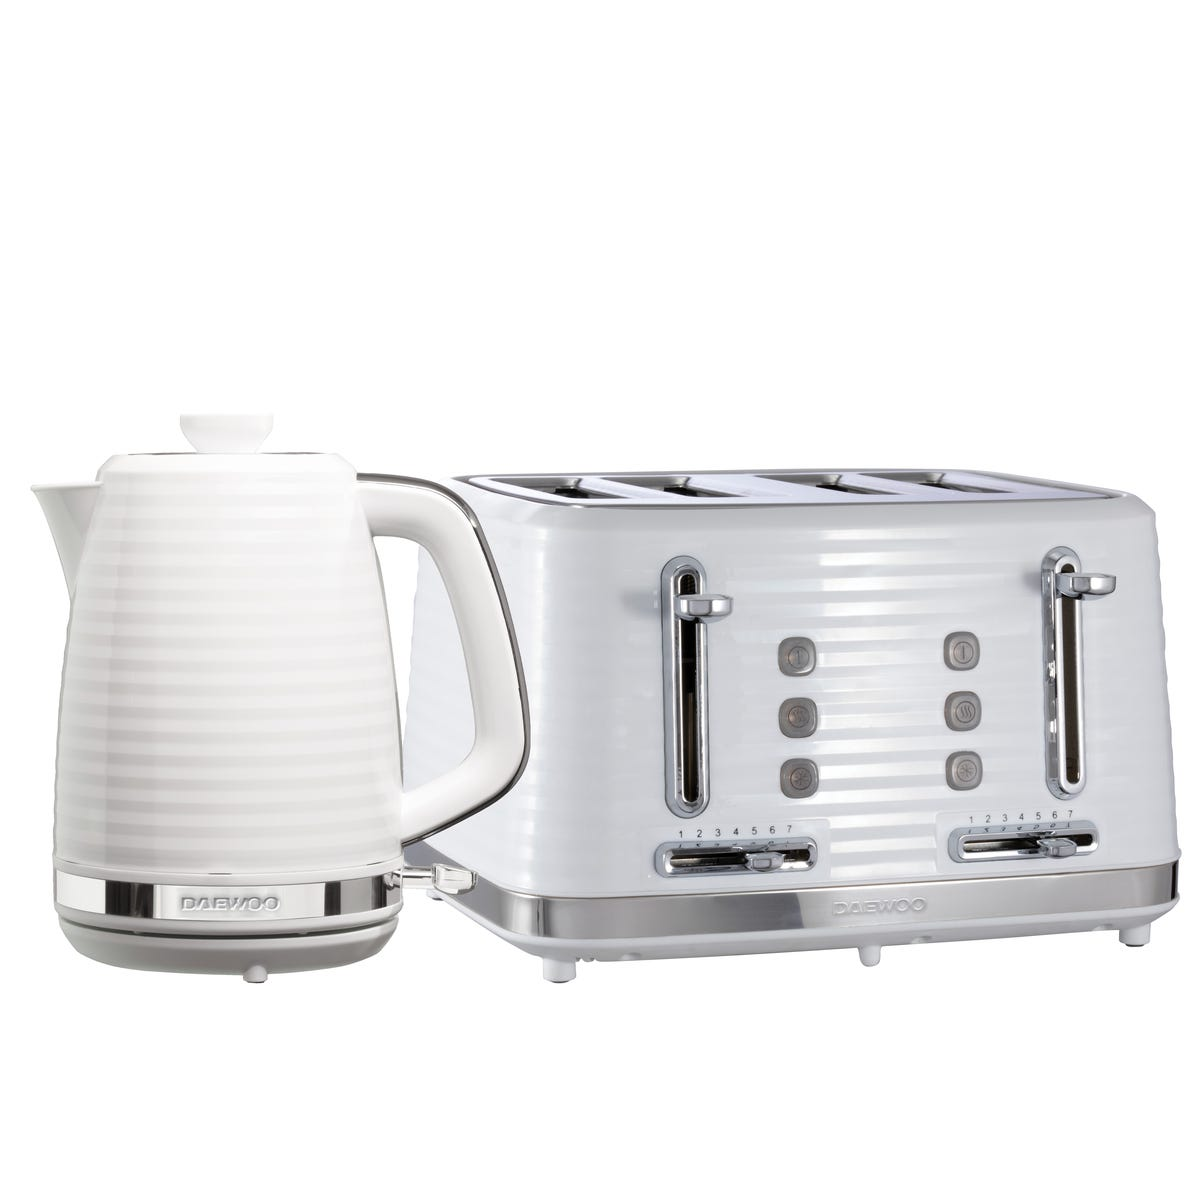 Daewoo SDA2370DS Hive 1.7L 3KW Textured Kettle and 4 Slice Toaster Set - White